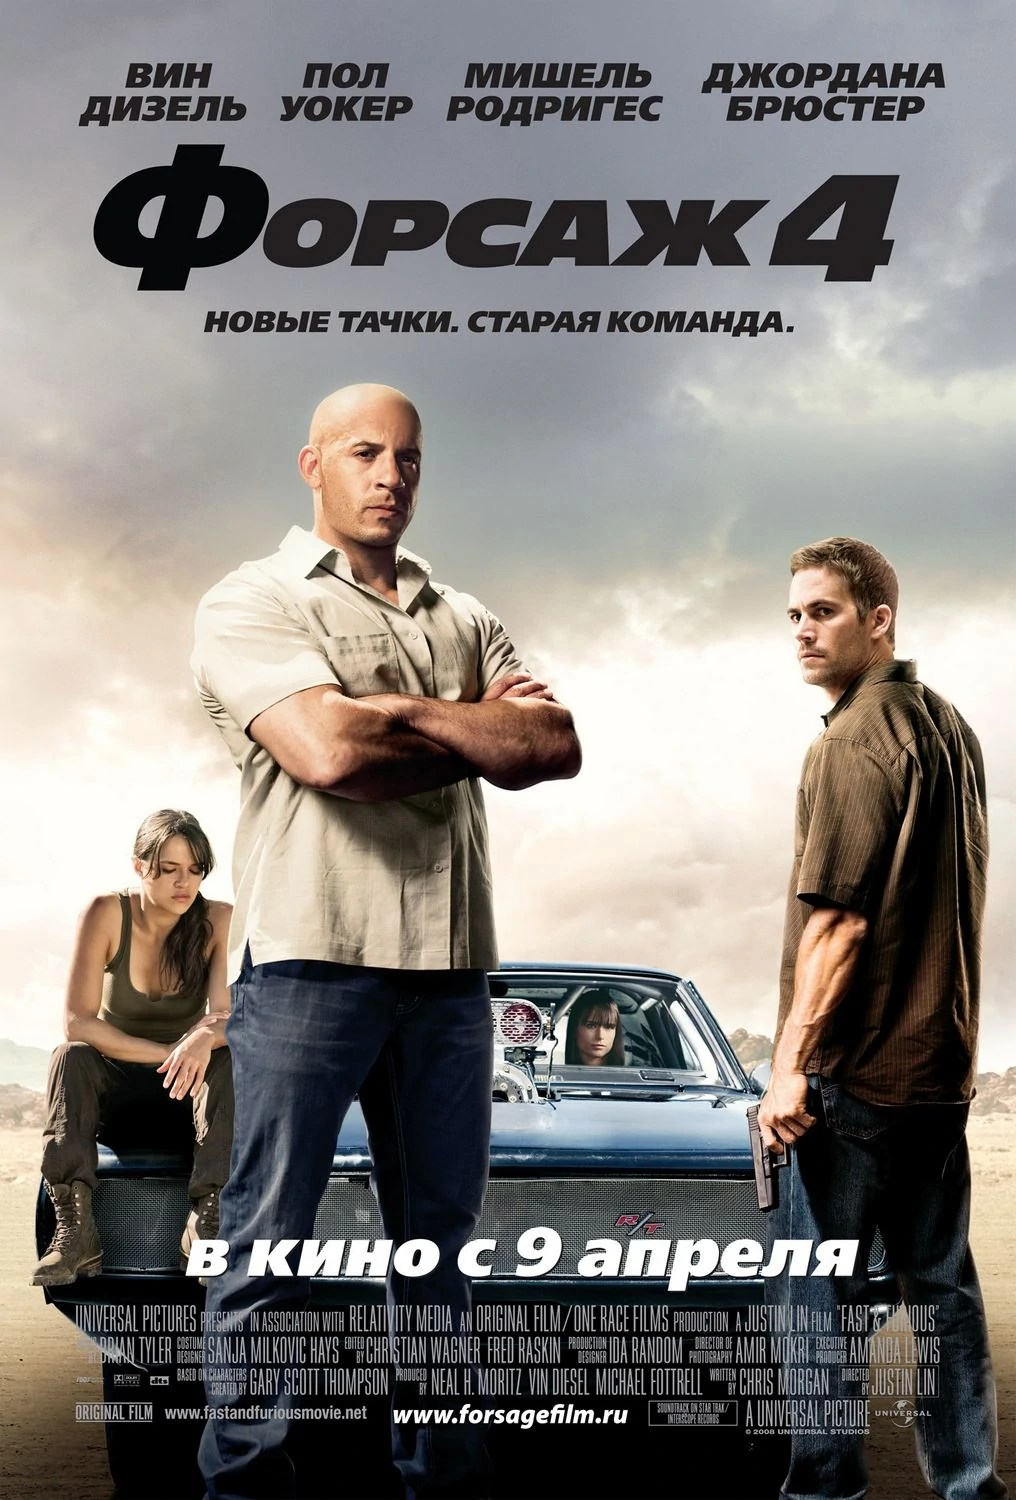 Image   Fast   Furious 4 Poster 06 jpg   The Fast and the Furious     Fast   Furious 4 Poster 06 jpg